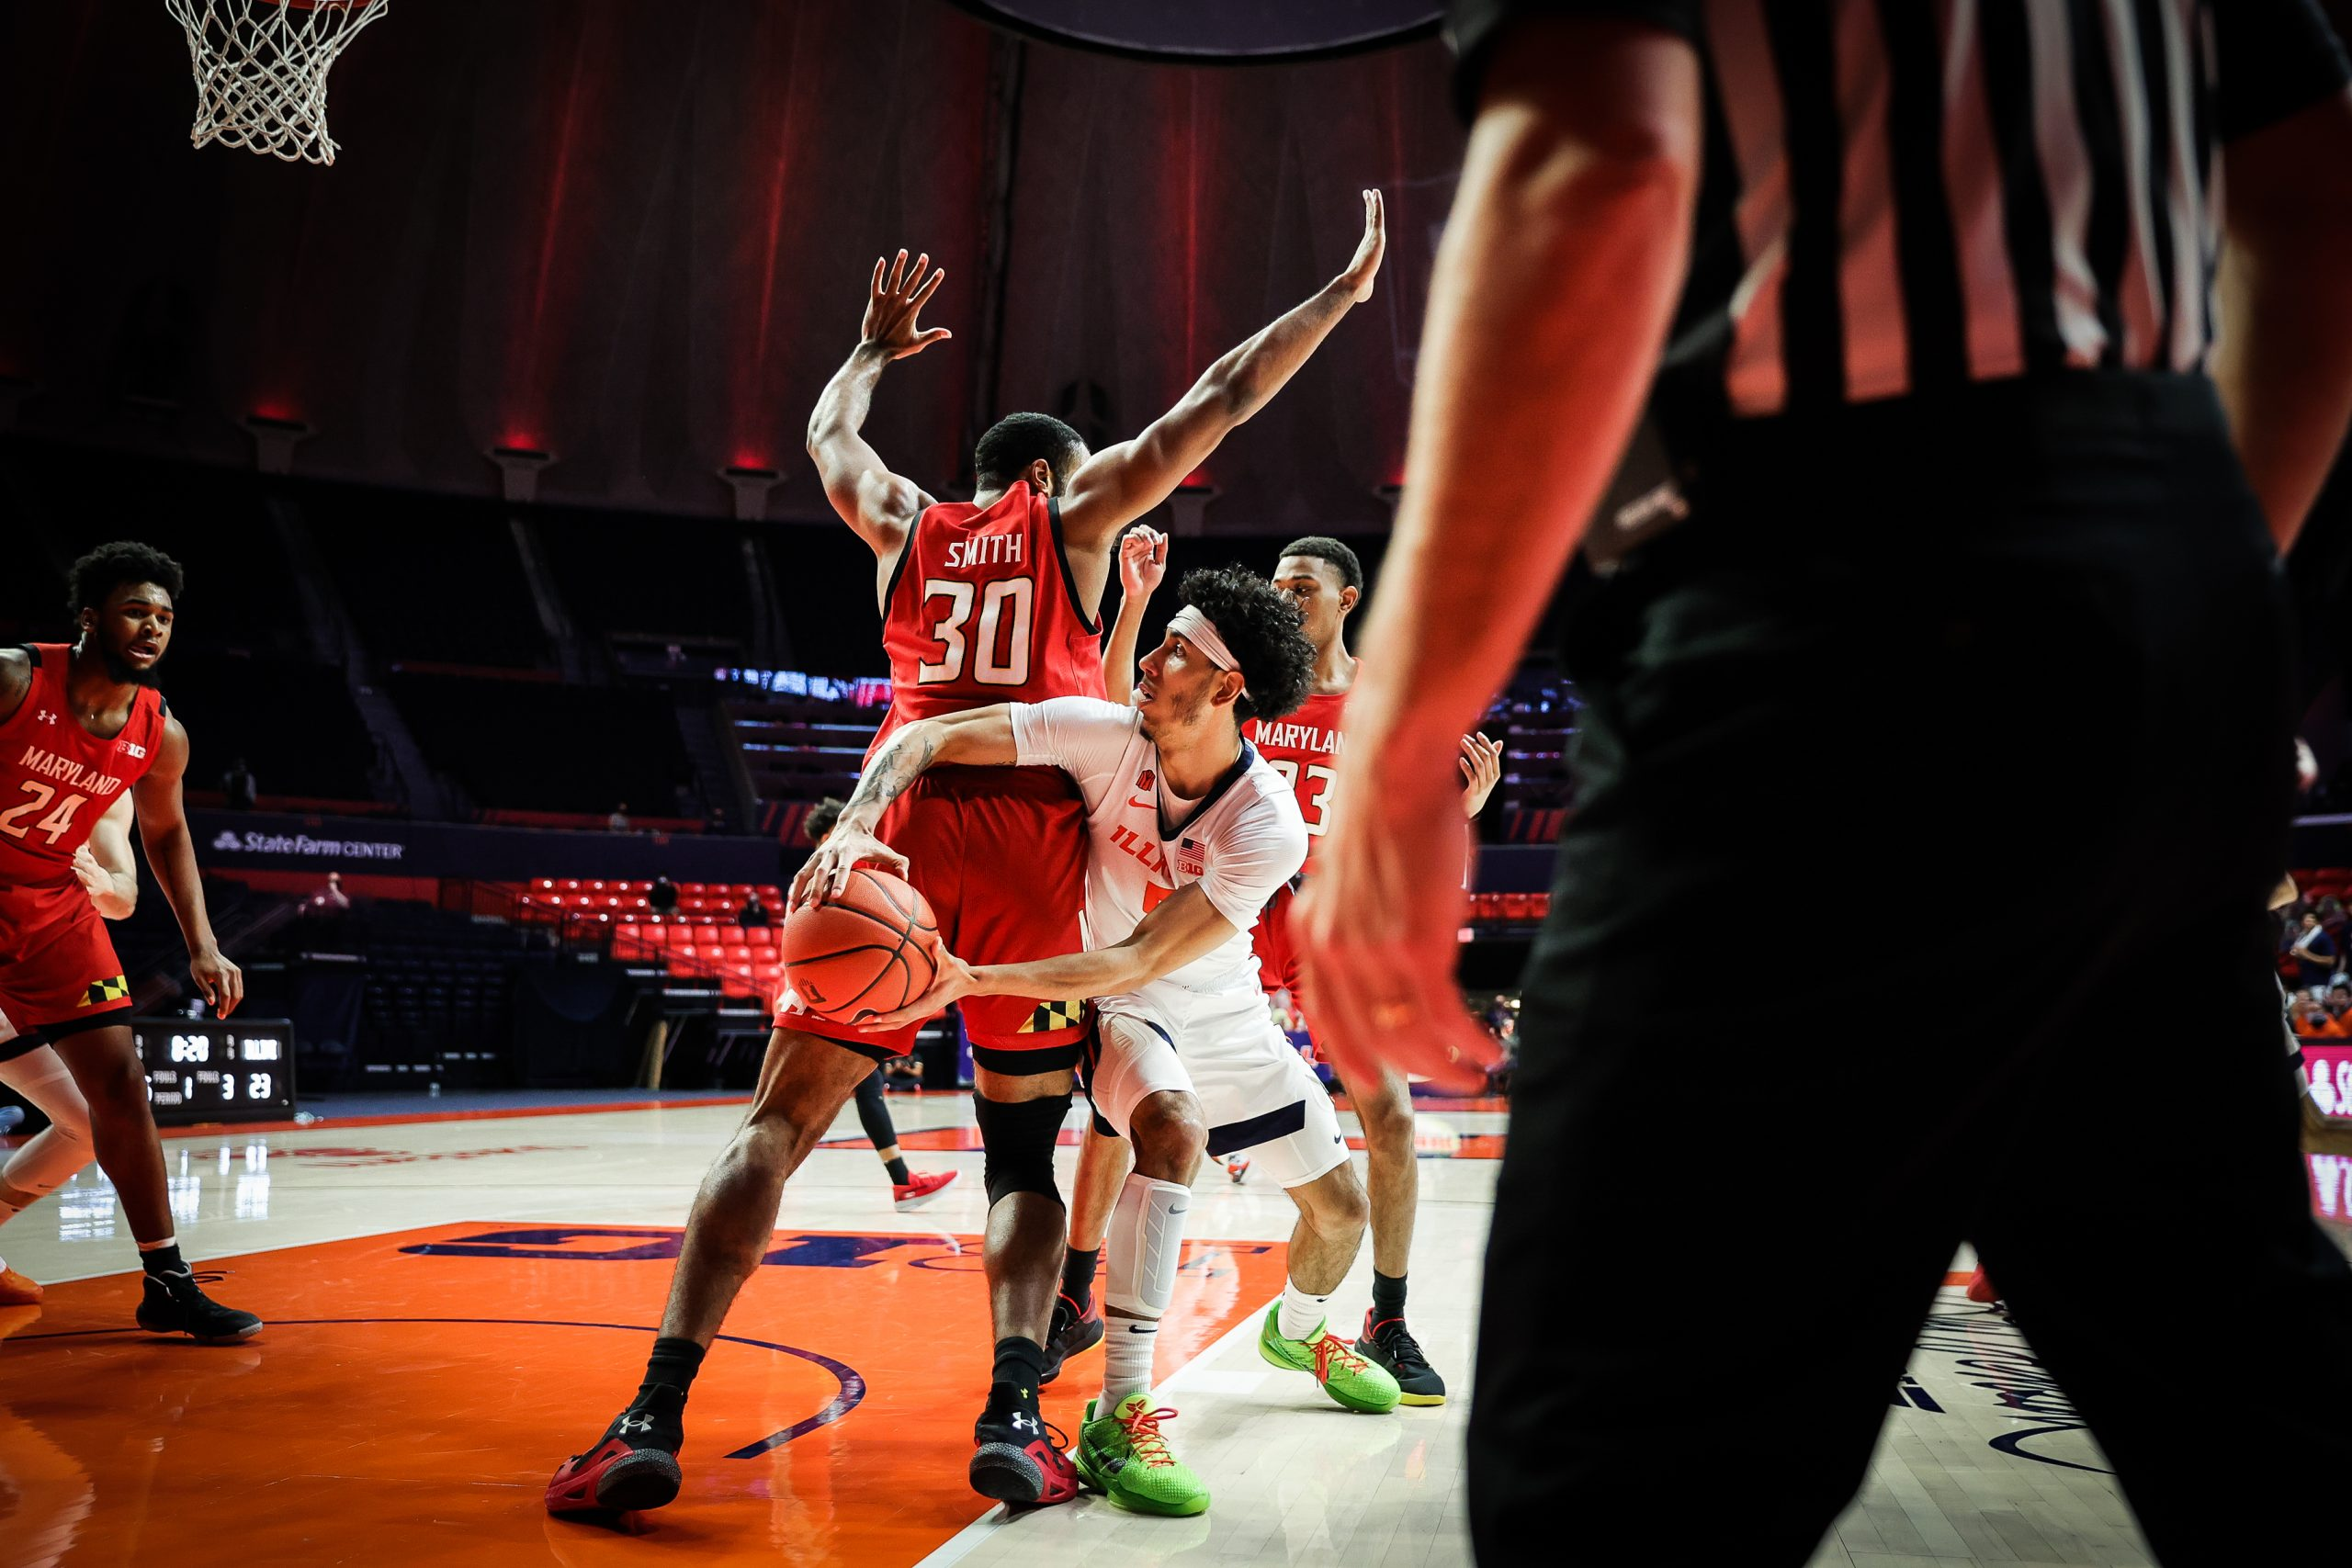 Illini frosh Curbelo doesn't mind being a passing fancy